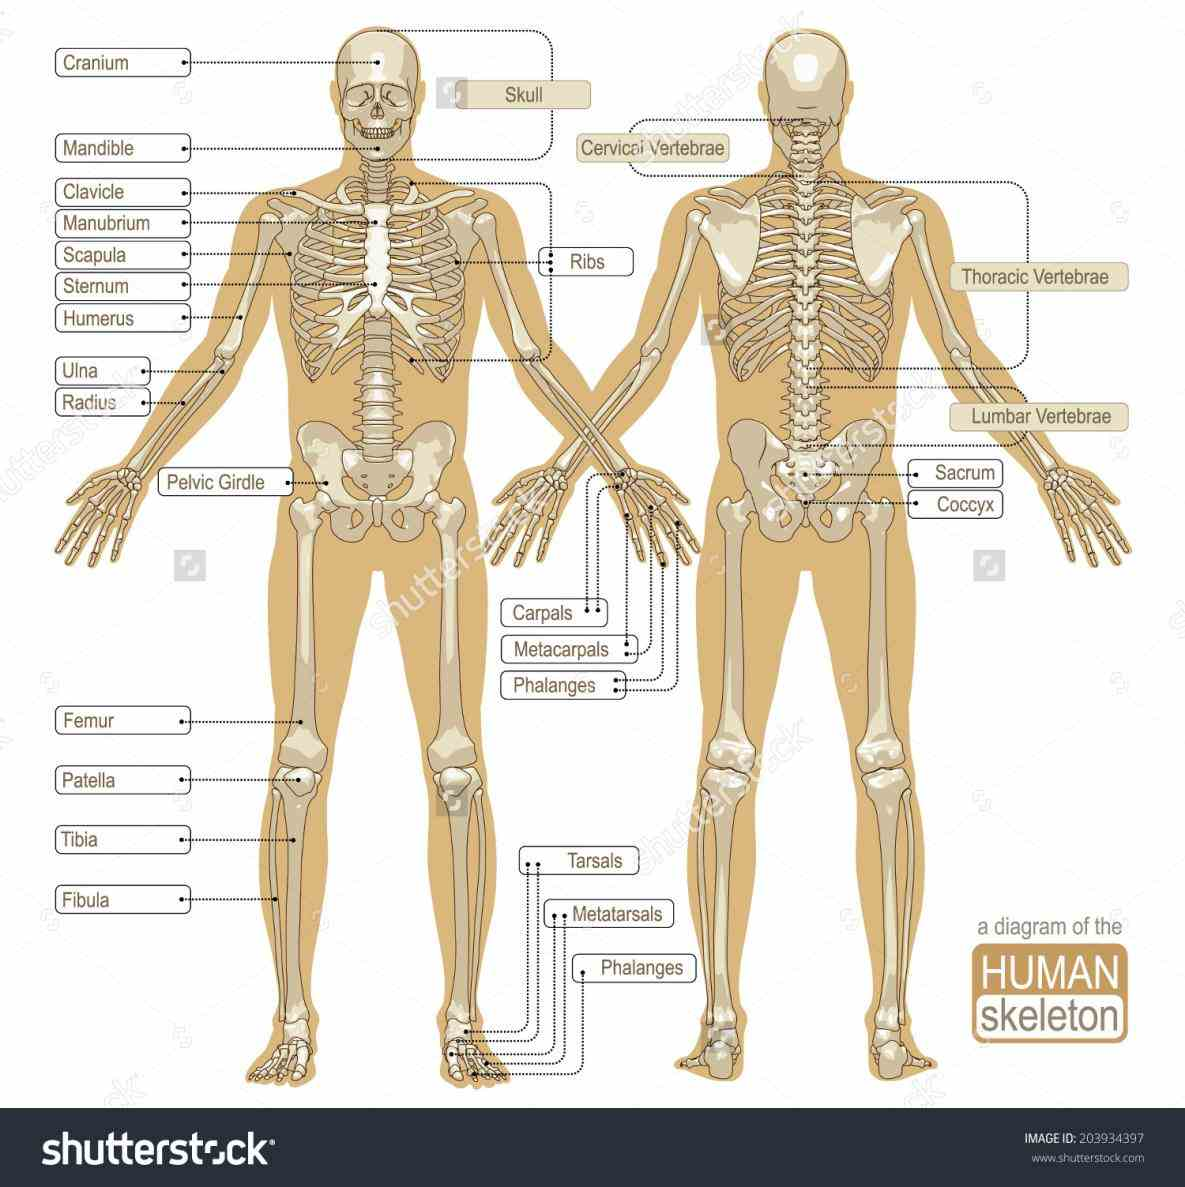 protects brain; vertebrae spinal the Parts Of The Human Skeletal System functions of skeleton are to provide support give